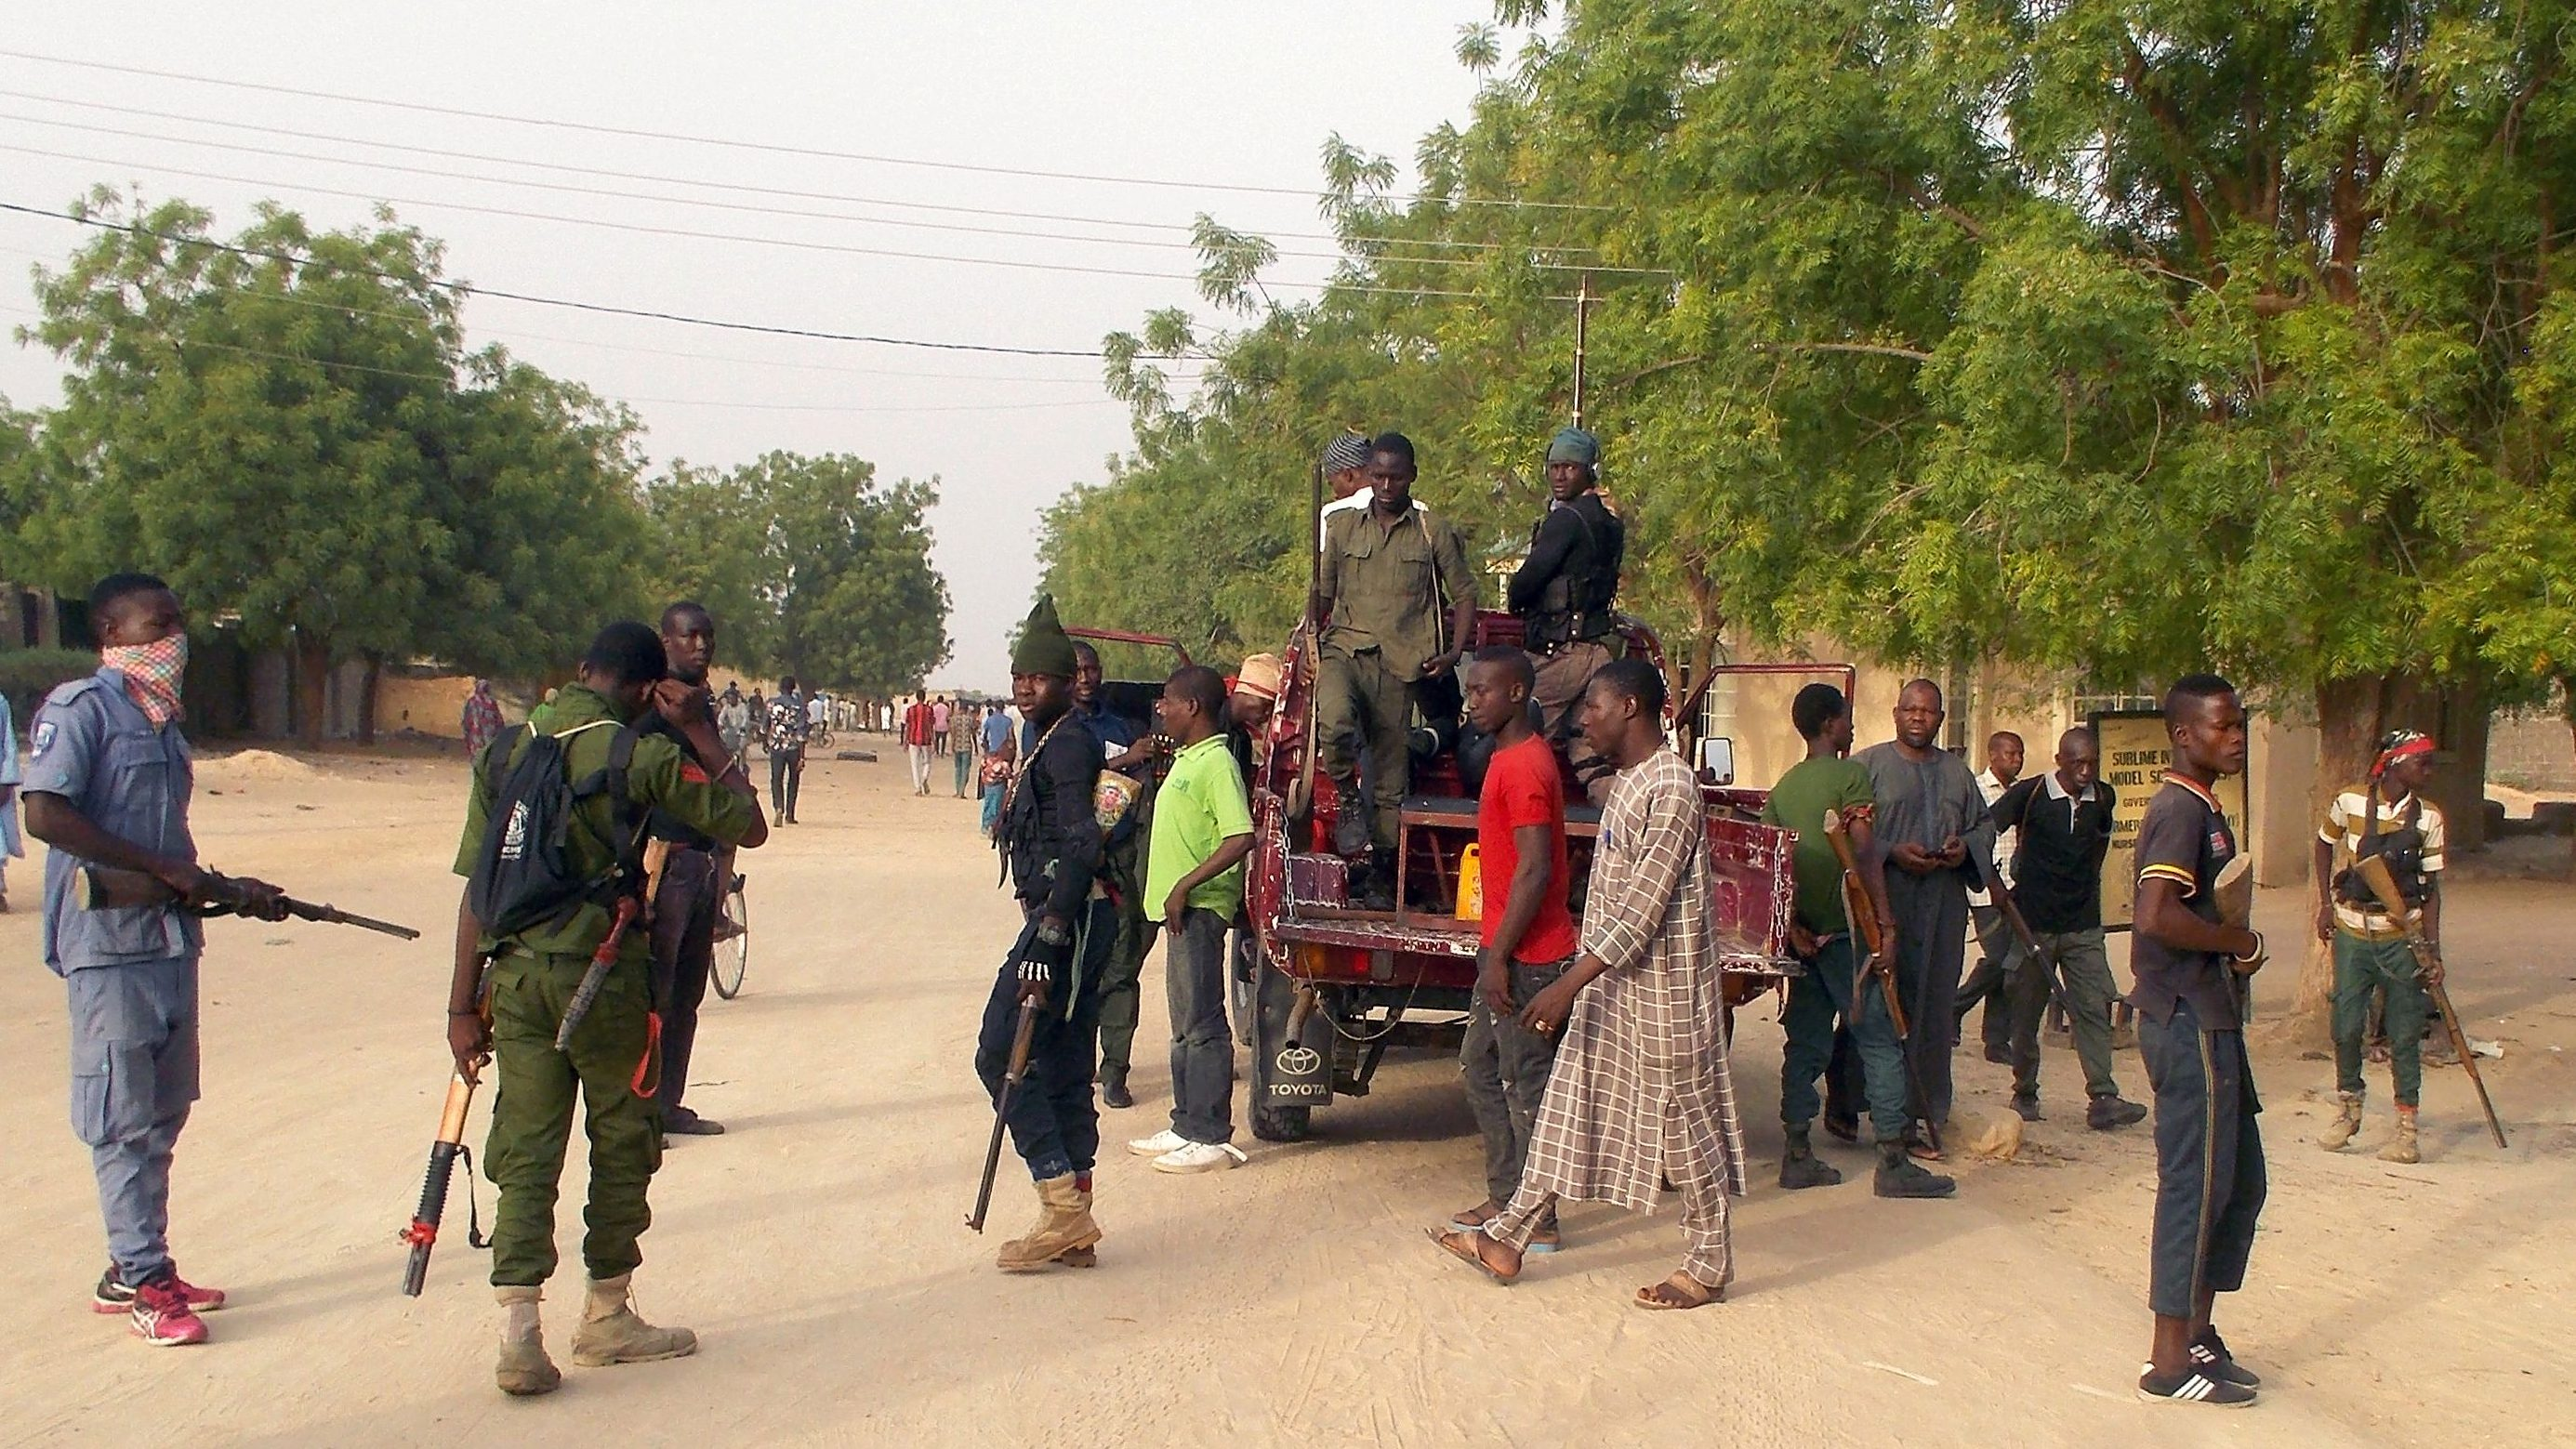 Local volunteers carrying weapons stand in the Jiddari Polo area in the northeastern city of Maiduguri, after an attack by Boko Haram militants, in Nigeria